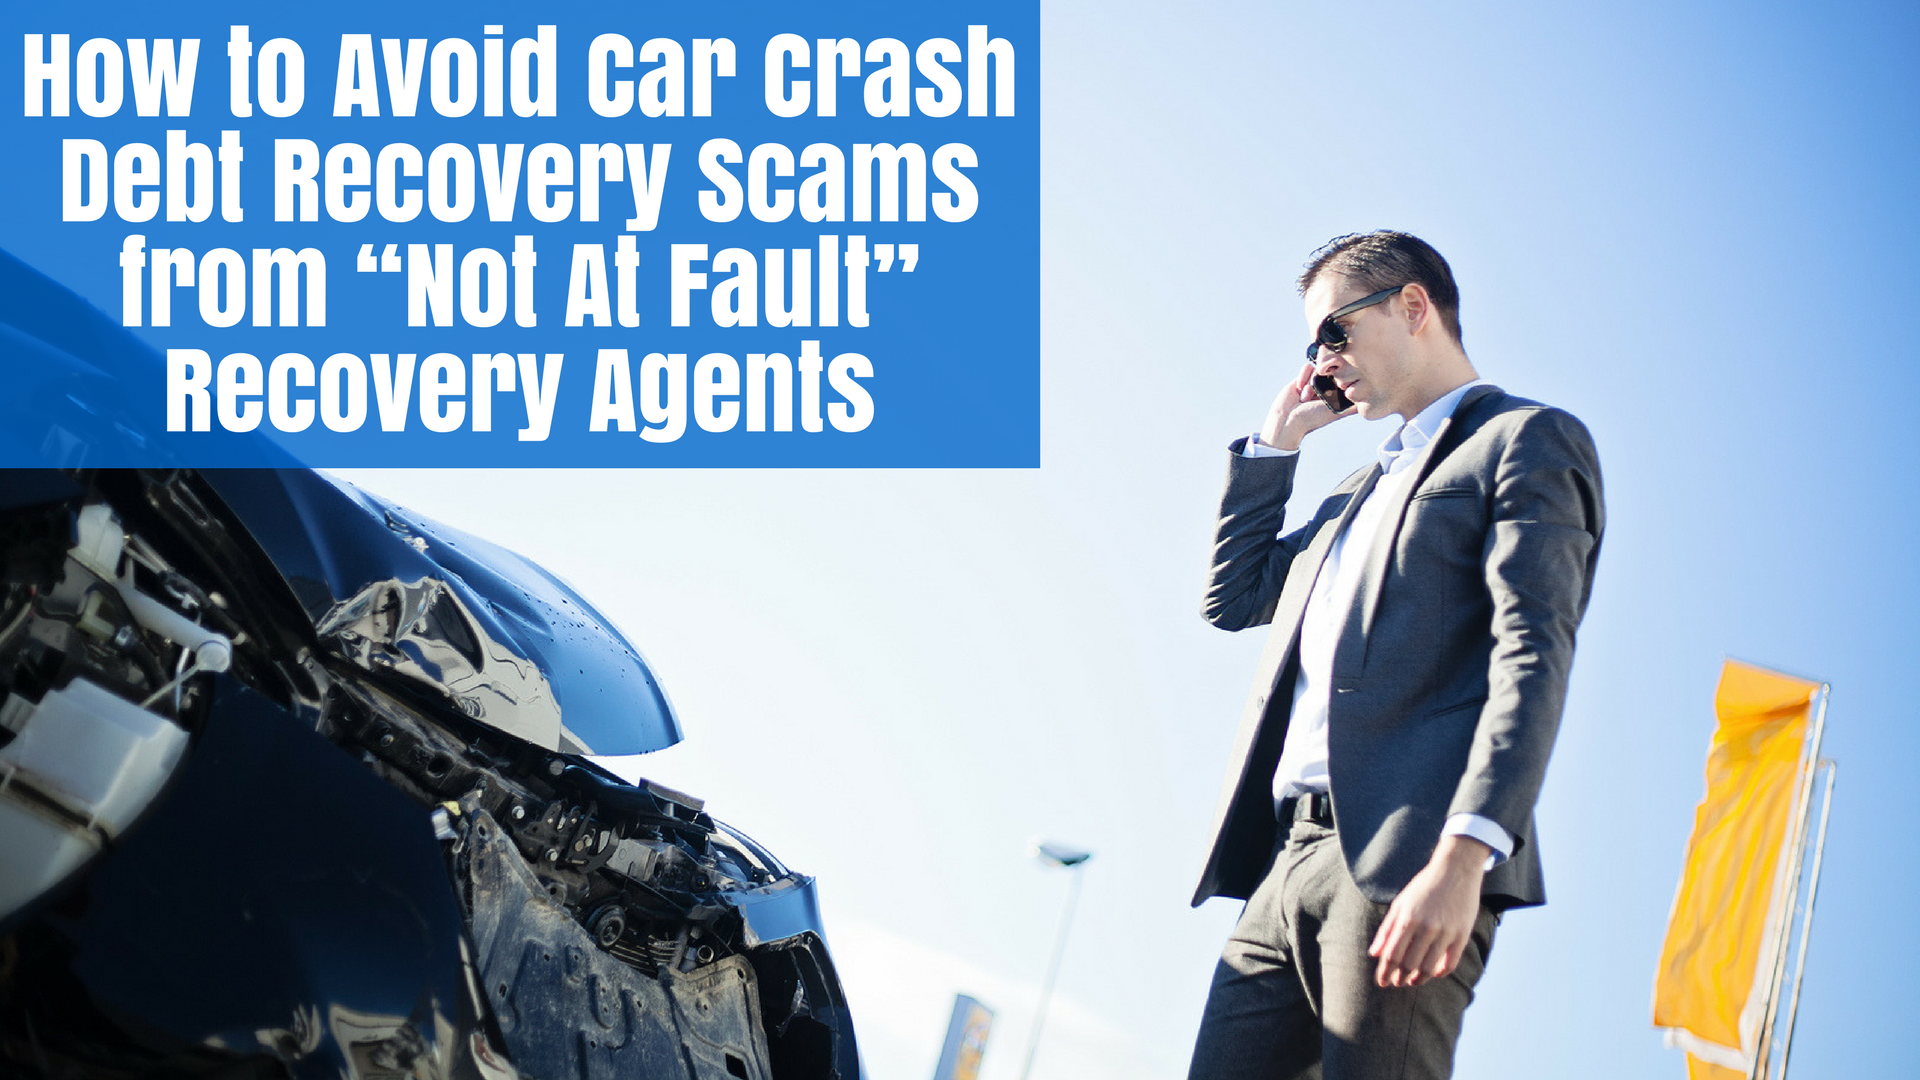 """How to Avoid Car Crash Debt Recovery Scams from """"Not At Fault"""" Recovery Agents"""